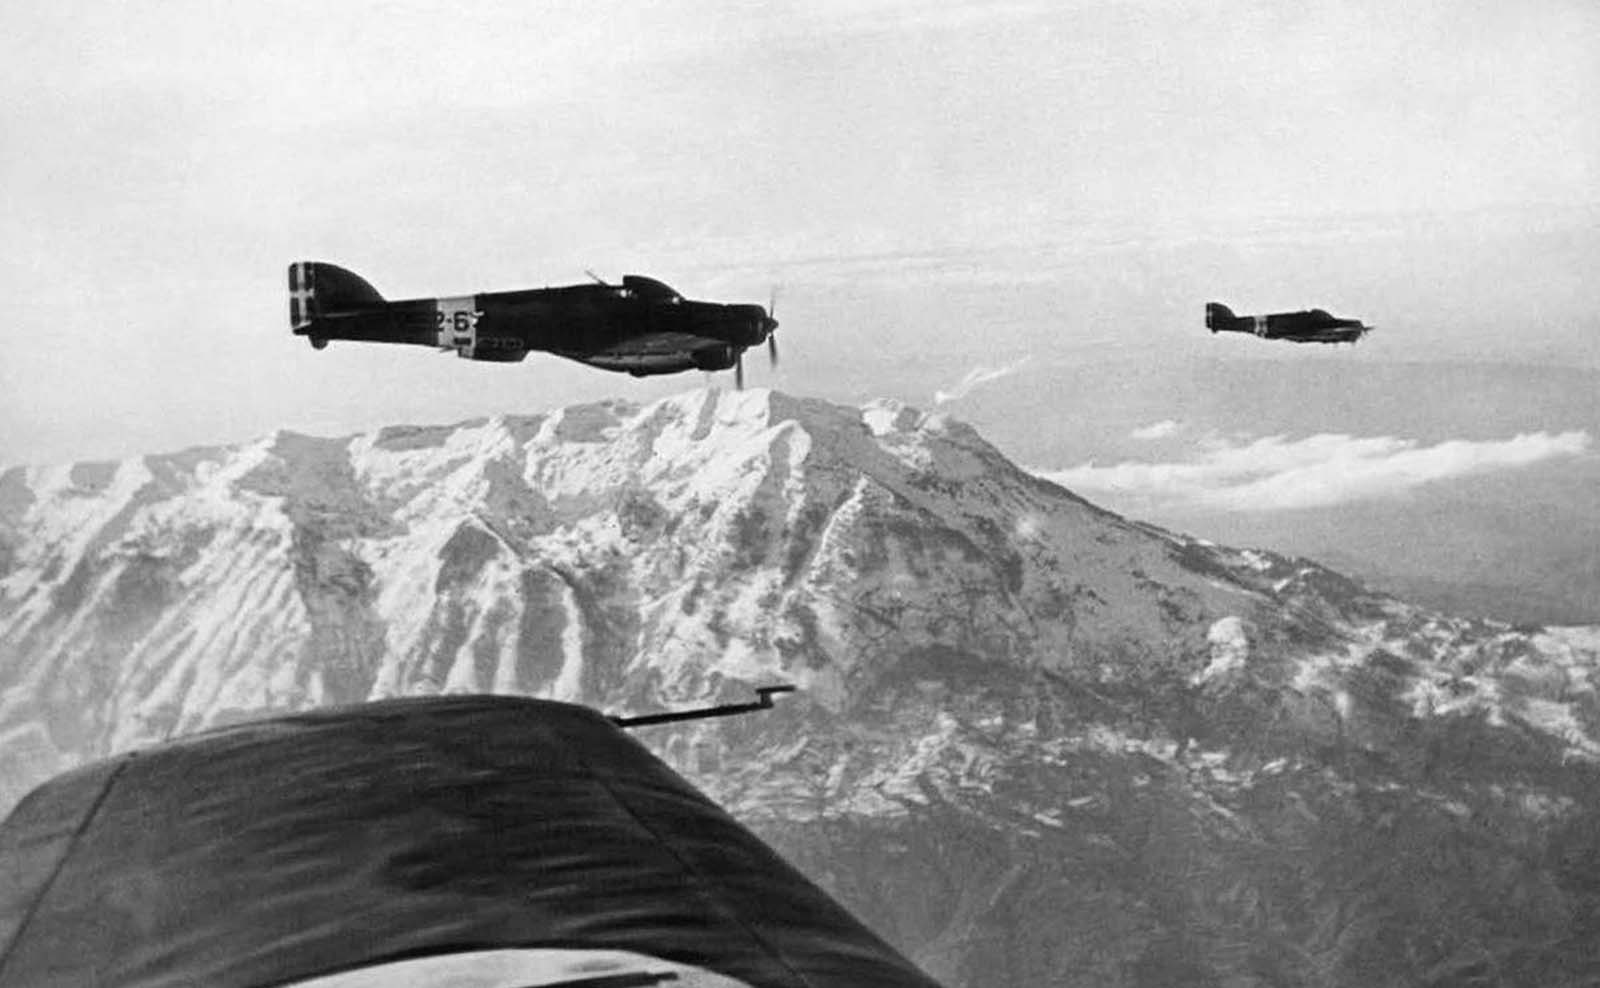 Italian bombers on their way to war action on the Albanian-Greek frontier, on January 9, 1941. Italian armies had launched an invasion of Greece from Albanian territory on October 28, 1940.